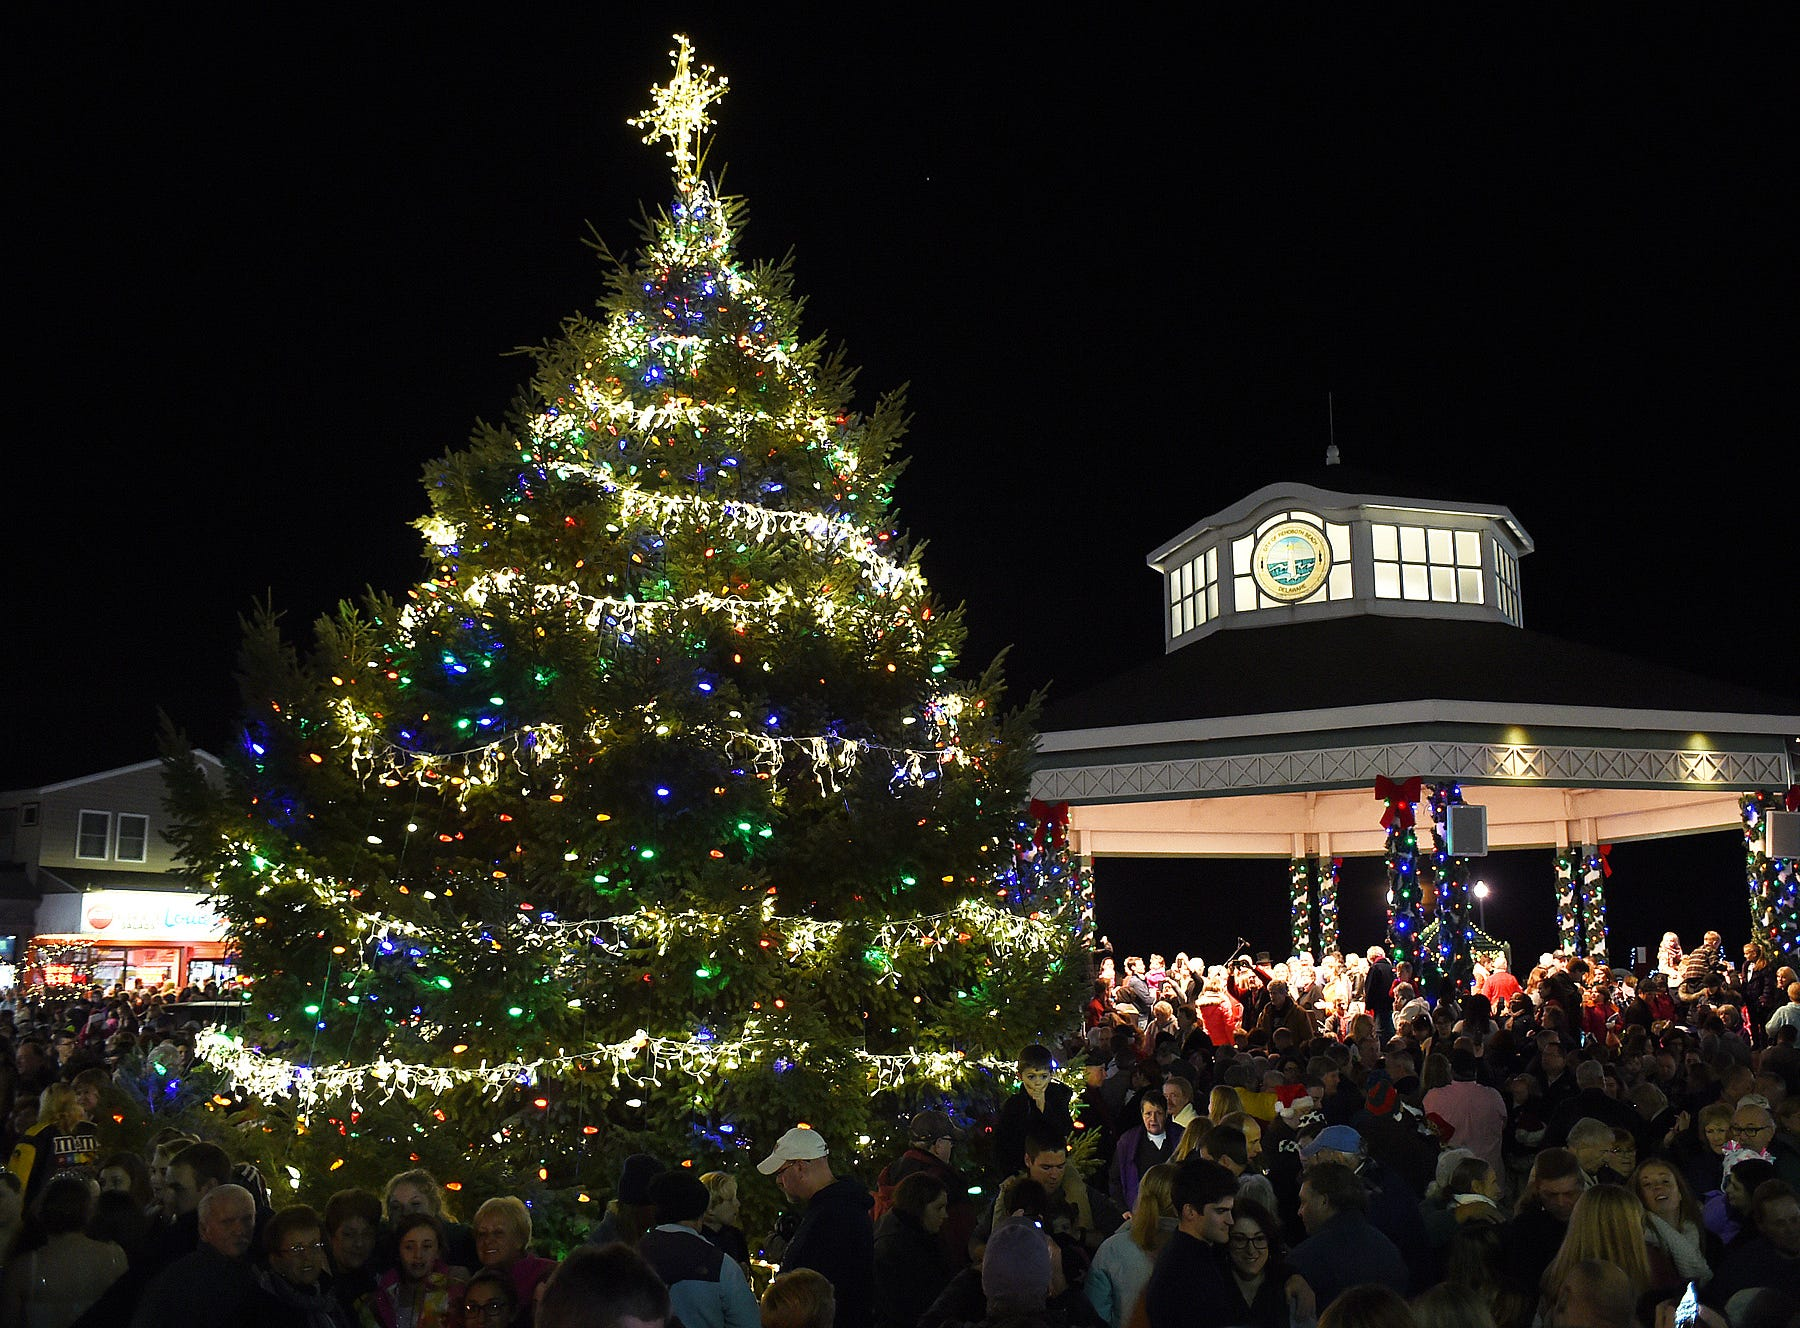 Attend the annual Rehoboth Beach Christmas tree lighting and sing-along at the bandstand. www.rehobothbandstand.com/event/rehoboth-beach-holiday-tree-lighting-4